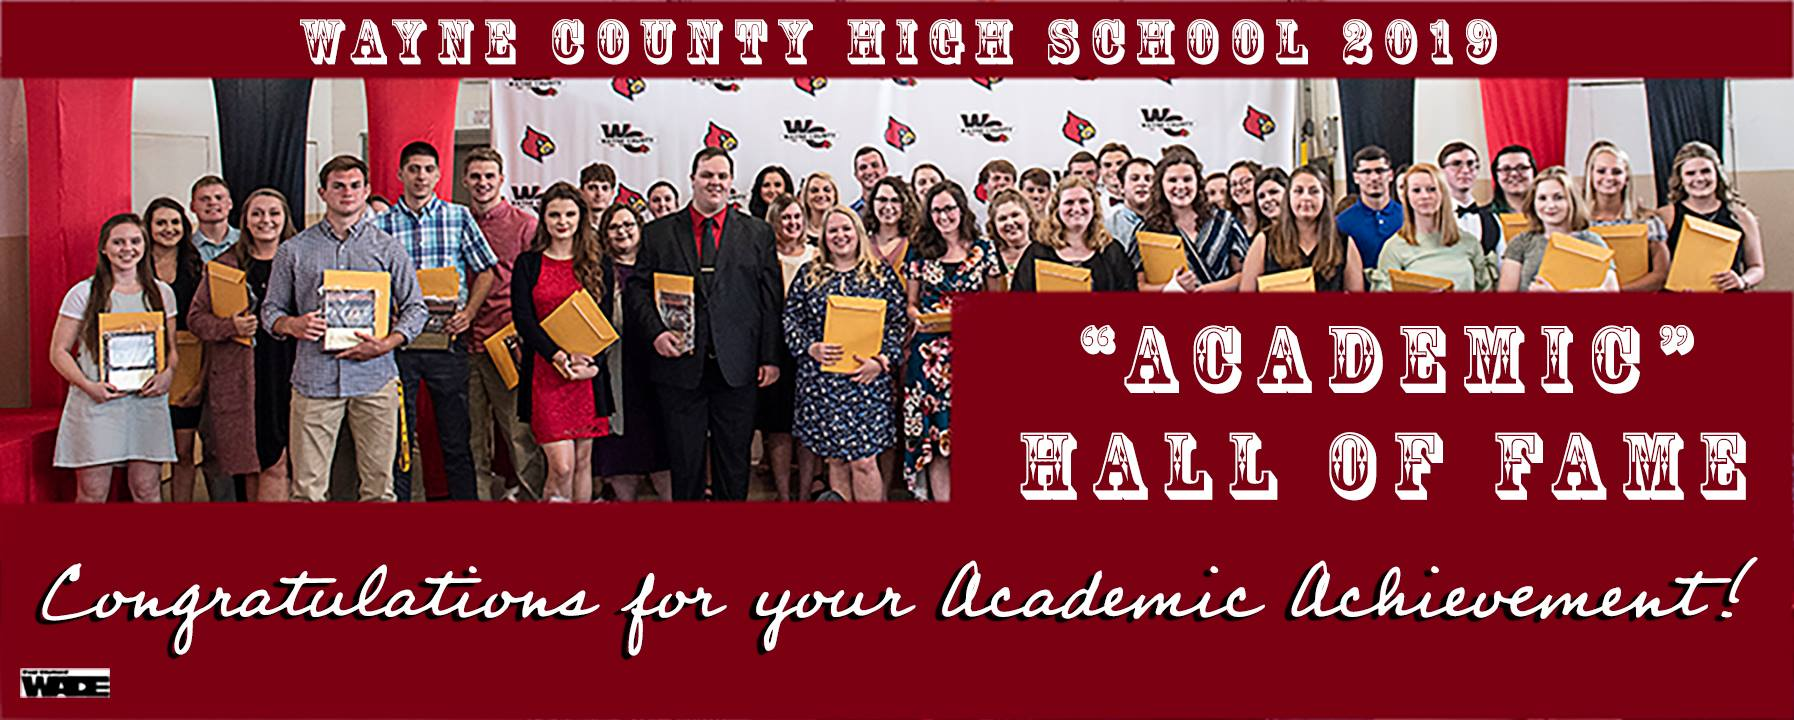 2019 Wayne County High School Academic Hall of Fame (Pictured by Wade Upchurch)